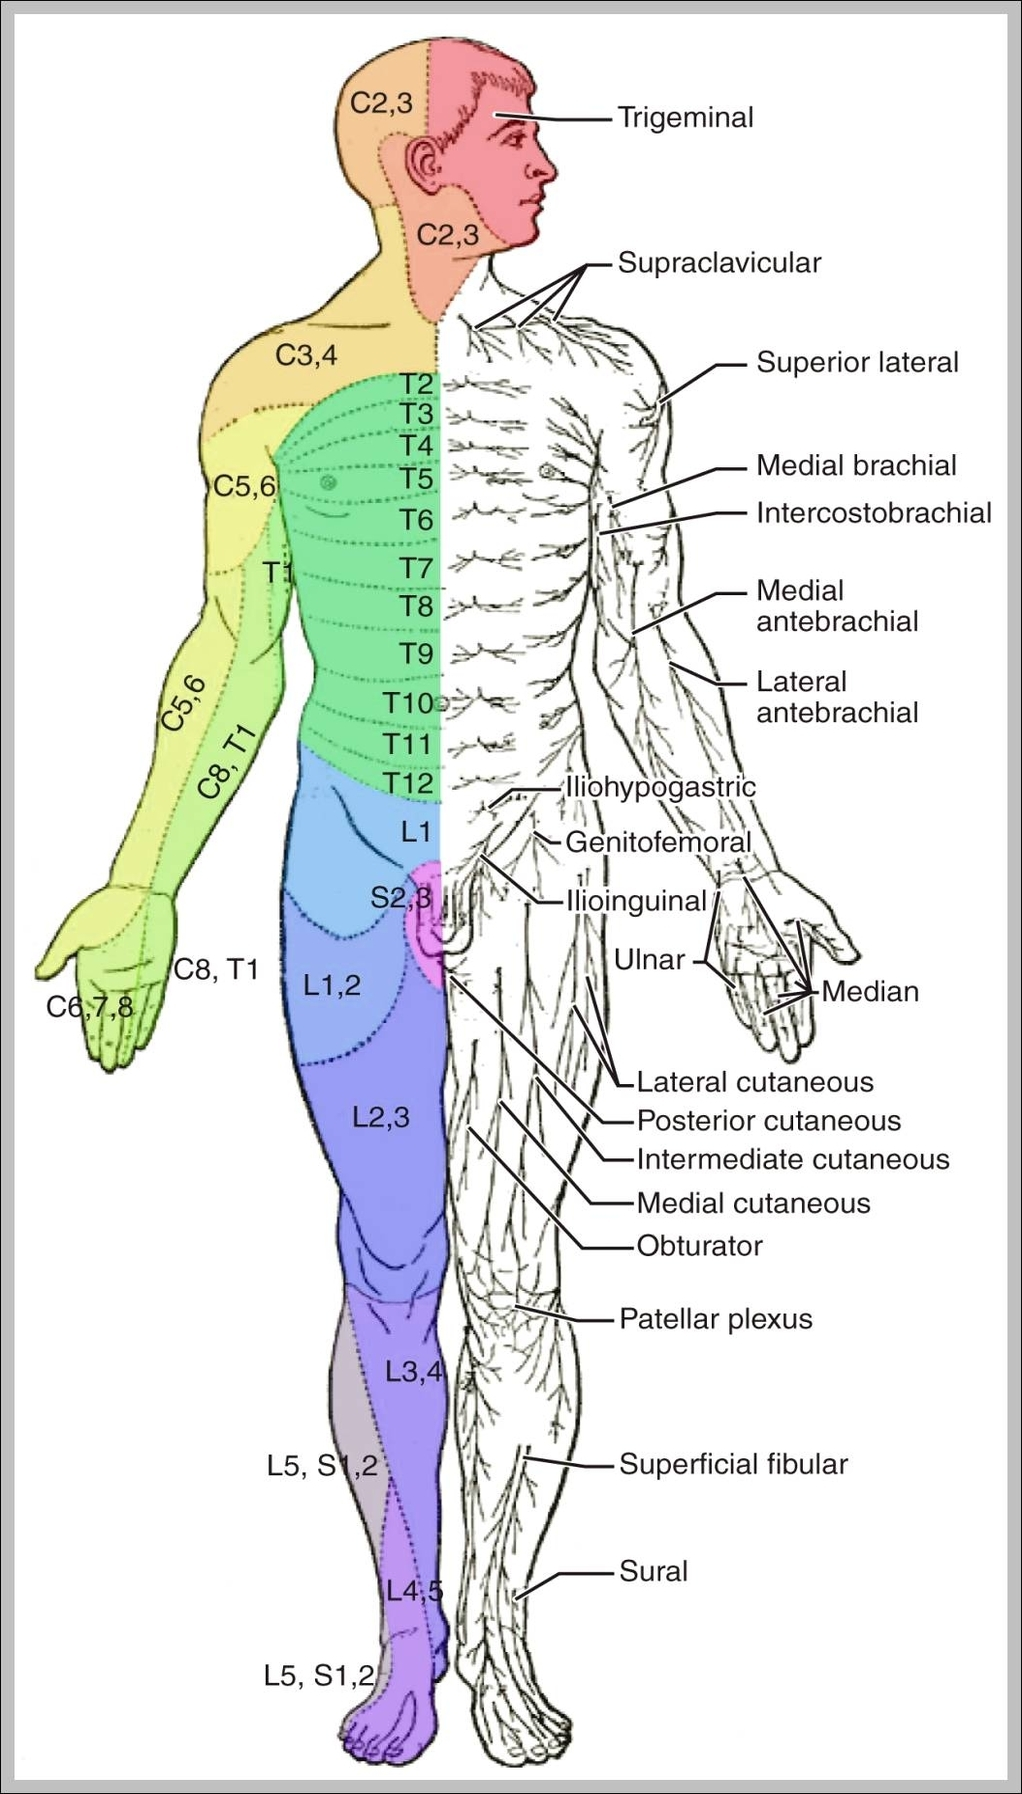 hight resolution of labeled muscle diagram 1024 1878 diagram labeled muscle diagram 1024 1878 chart human anatomy diagrams and charts explained